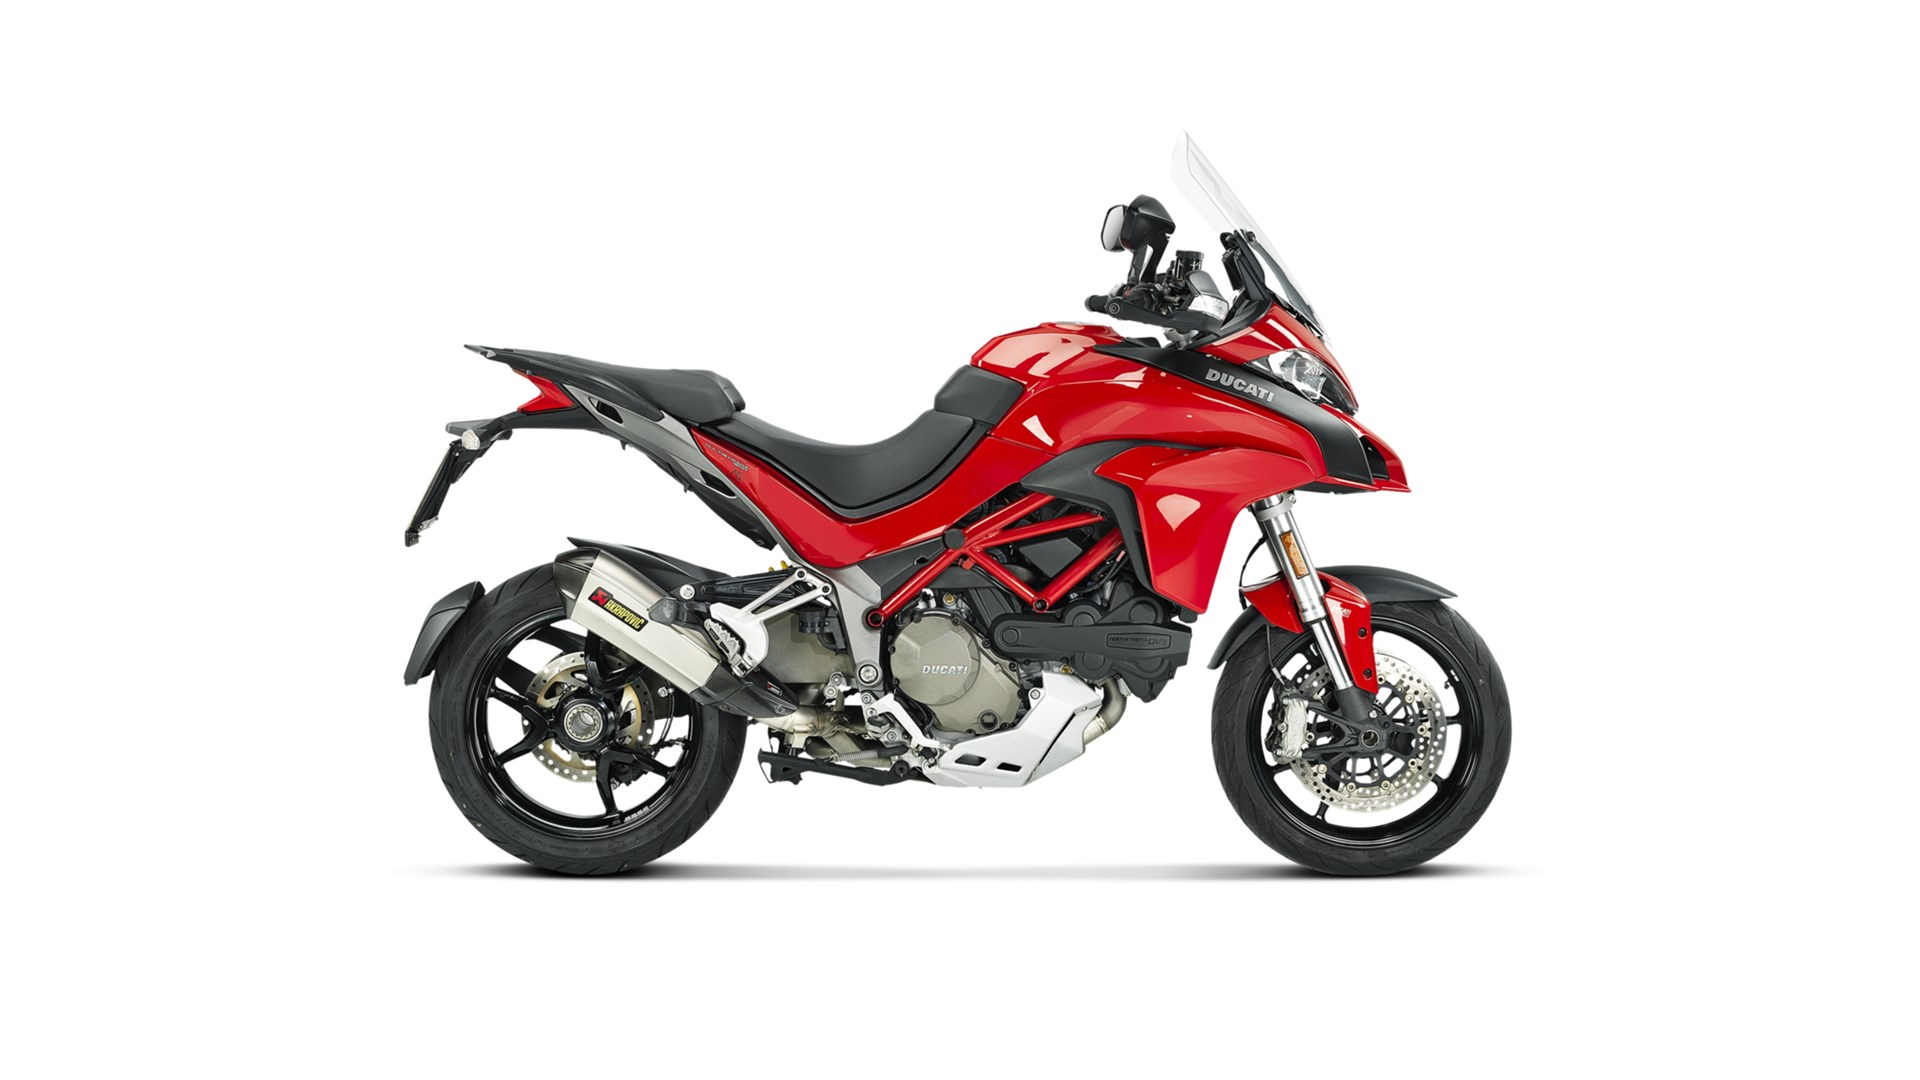 https://s1.cdn.autoevolution.com/images/news/akrapovic-revolutionary-exhaust-now-available-in-titanium-for-the-ducati-multistrada-1200-101686_1.jpg